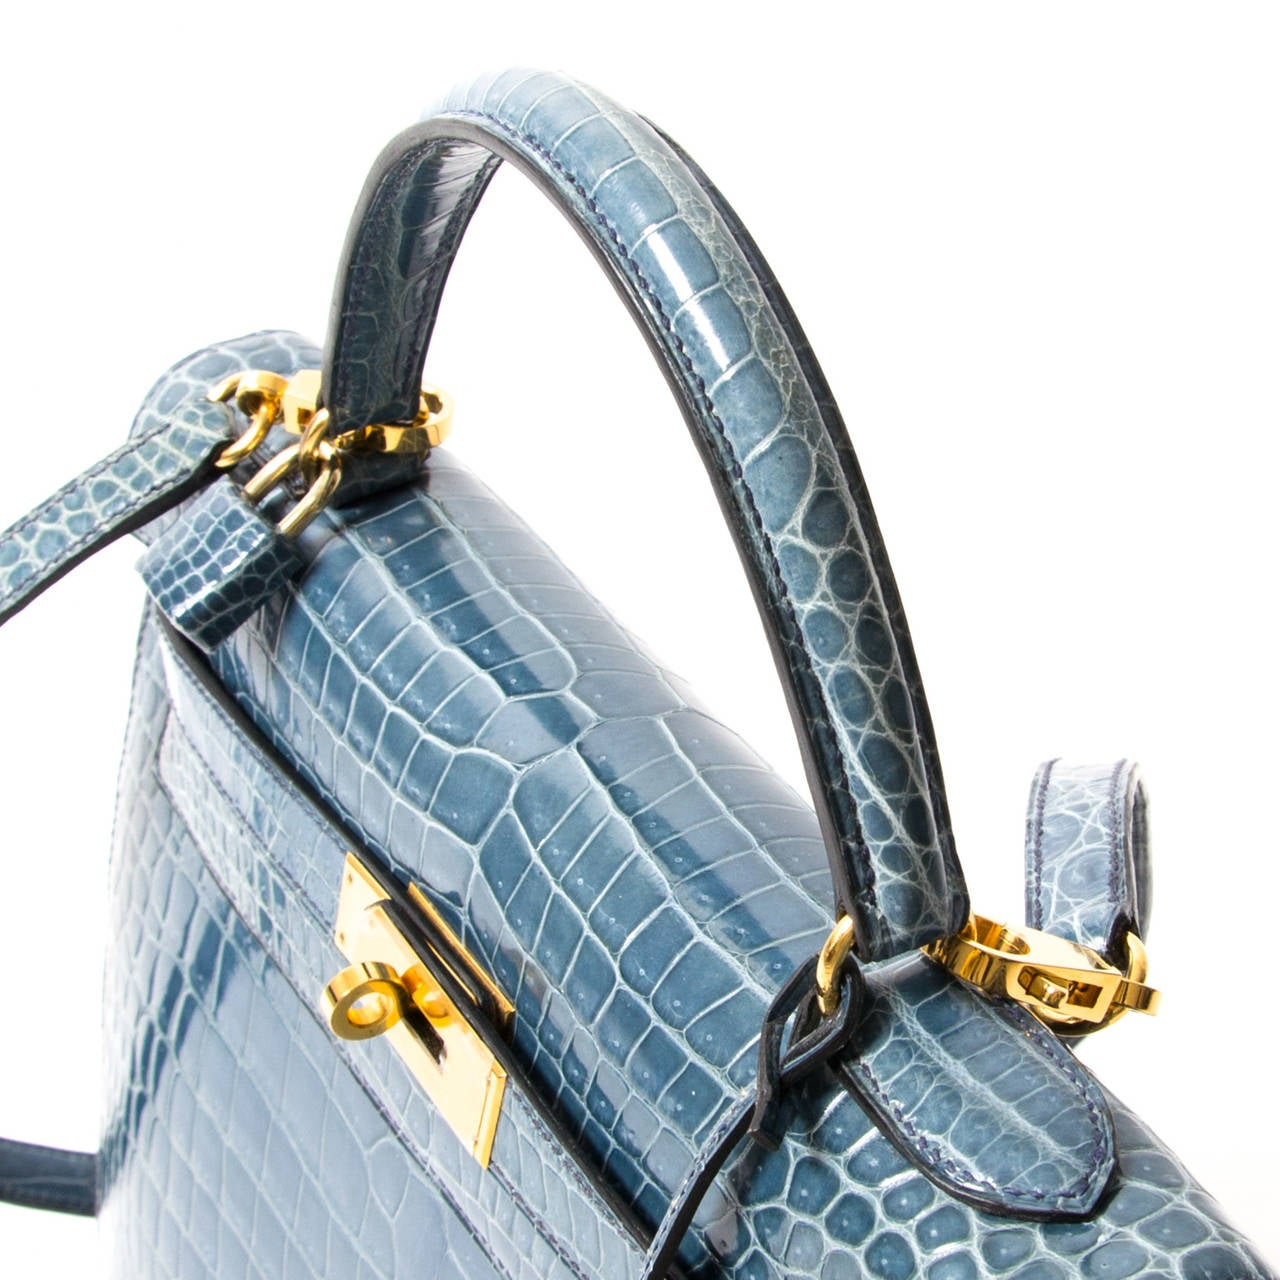 A rare Hermès Extraordinary Blue Jean Crocodile Porosus Kelly Bag Gold Hardware.  A must for any serious collector.  This particular Kelly bag is made from precious exotic leather, crocodile Porosus. The Crocodile leather has a beautifully